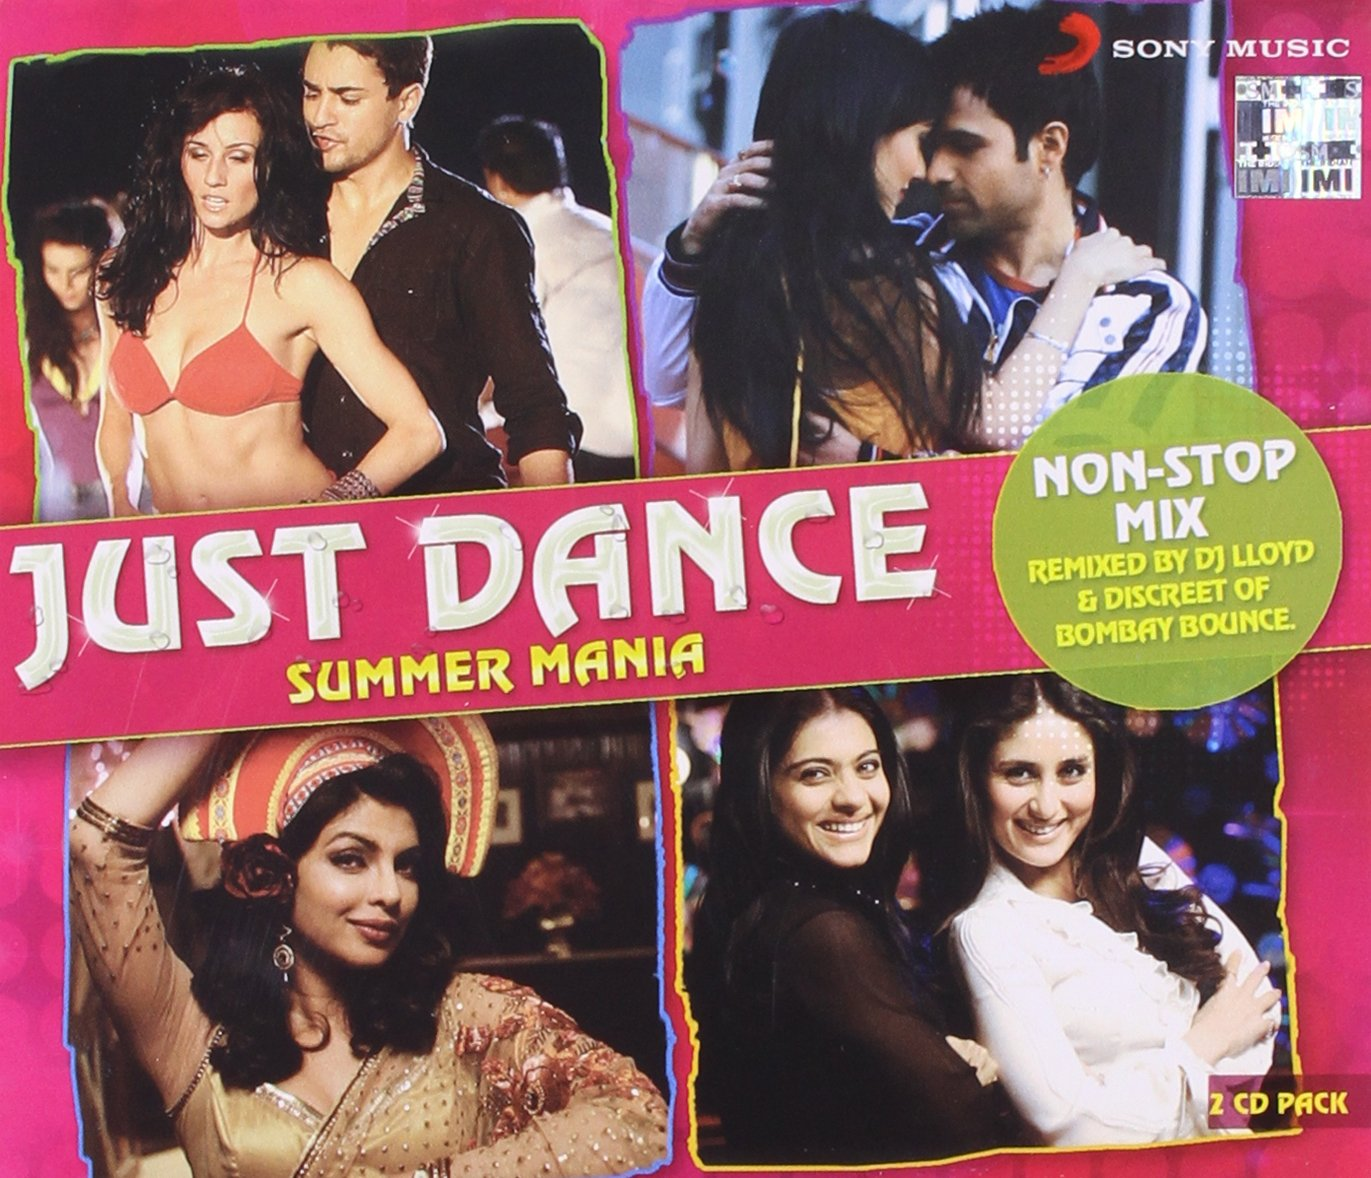 Various Just Dance Summer Mania Bollywood Cd Amazon Com Music Always look on the bright side of lifethe frankie bostello orchestra • just dance (original creations & covers from the video game). just dance summer mania bollywood cd